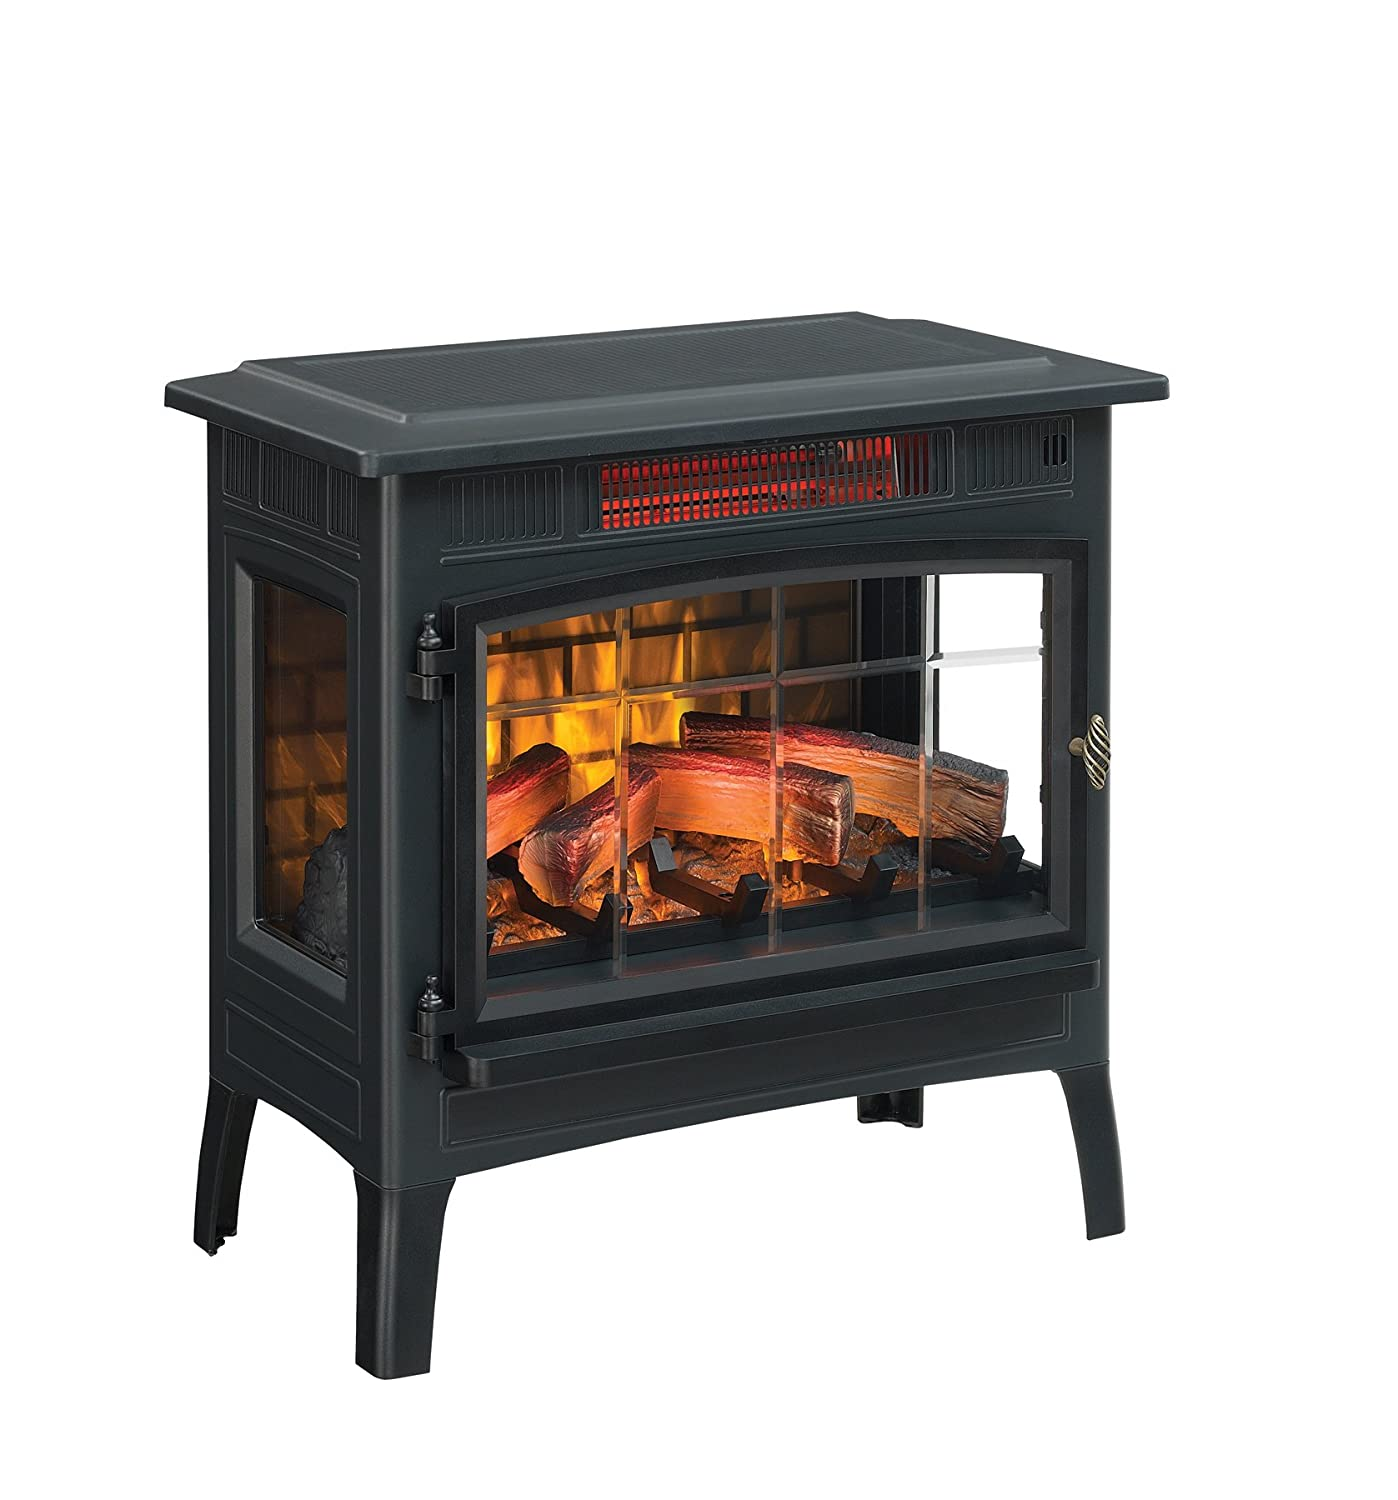 amazon com duraflame dfi 5010 01 infrared quartz fireplace stove